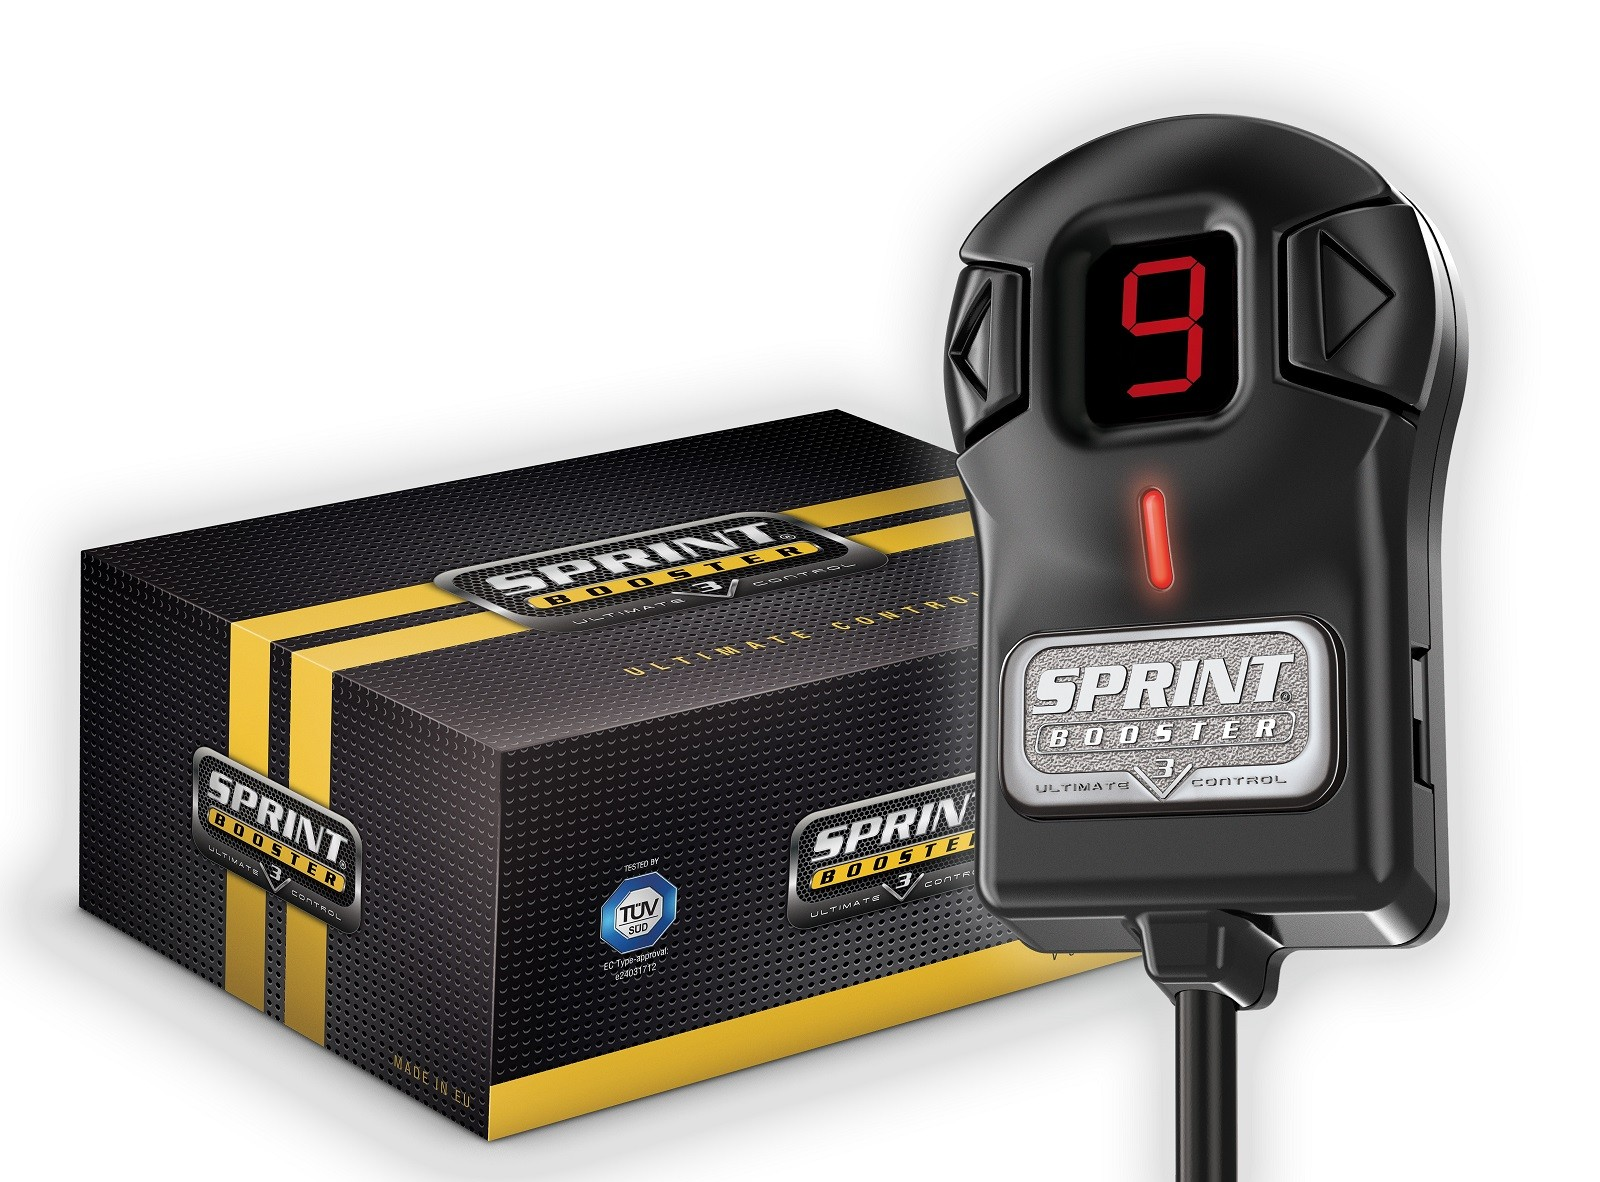 SprintBooster SBFI0003S Performance Upgrade Power Converter Sprint Booster